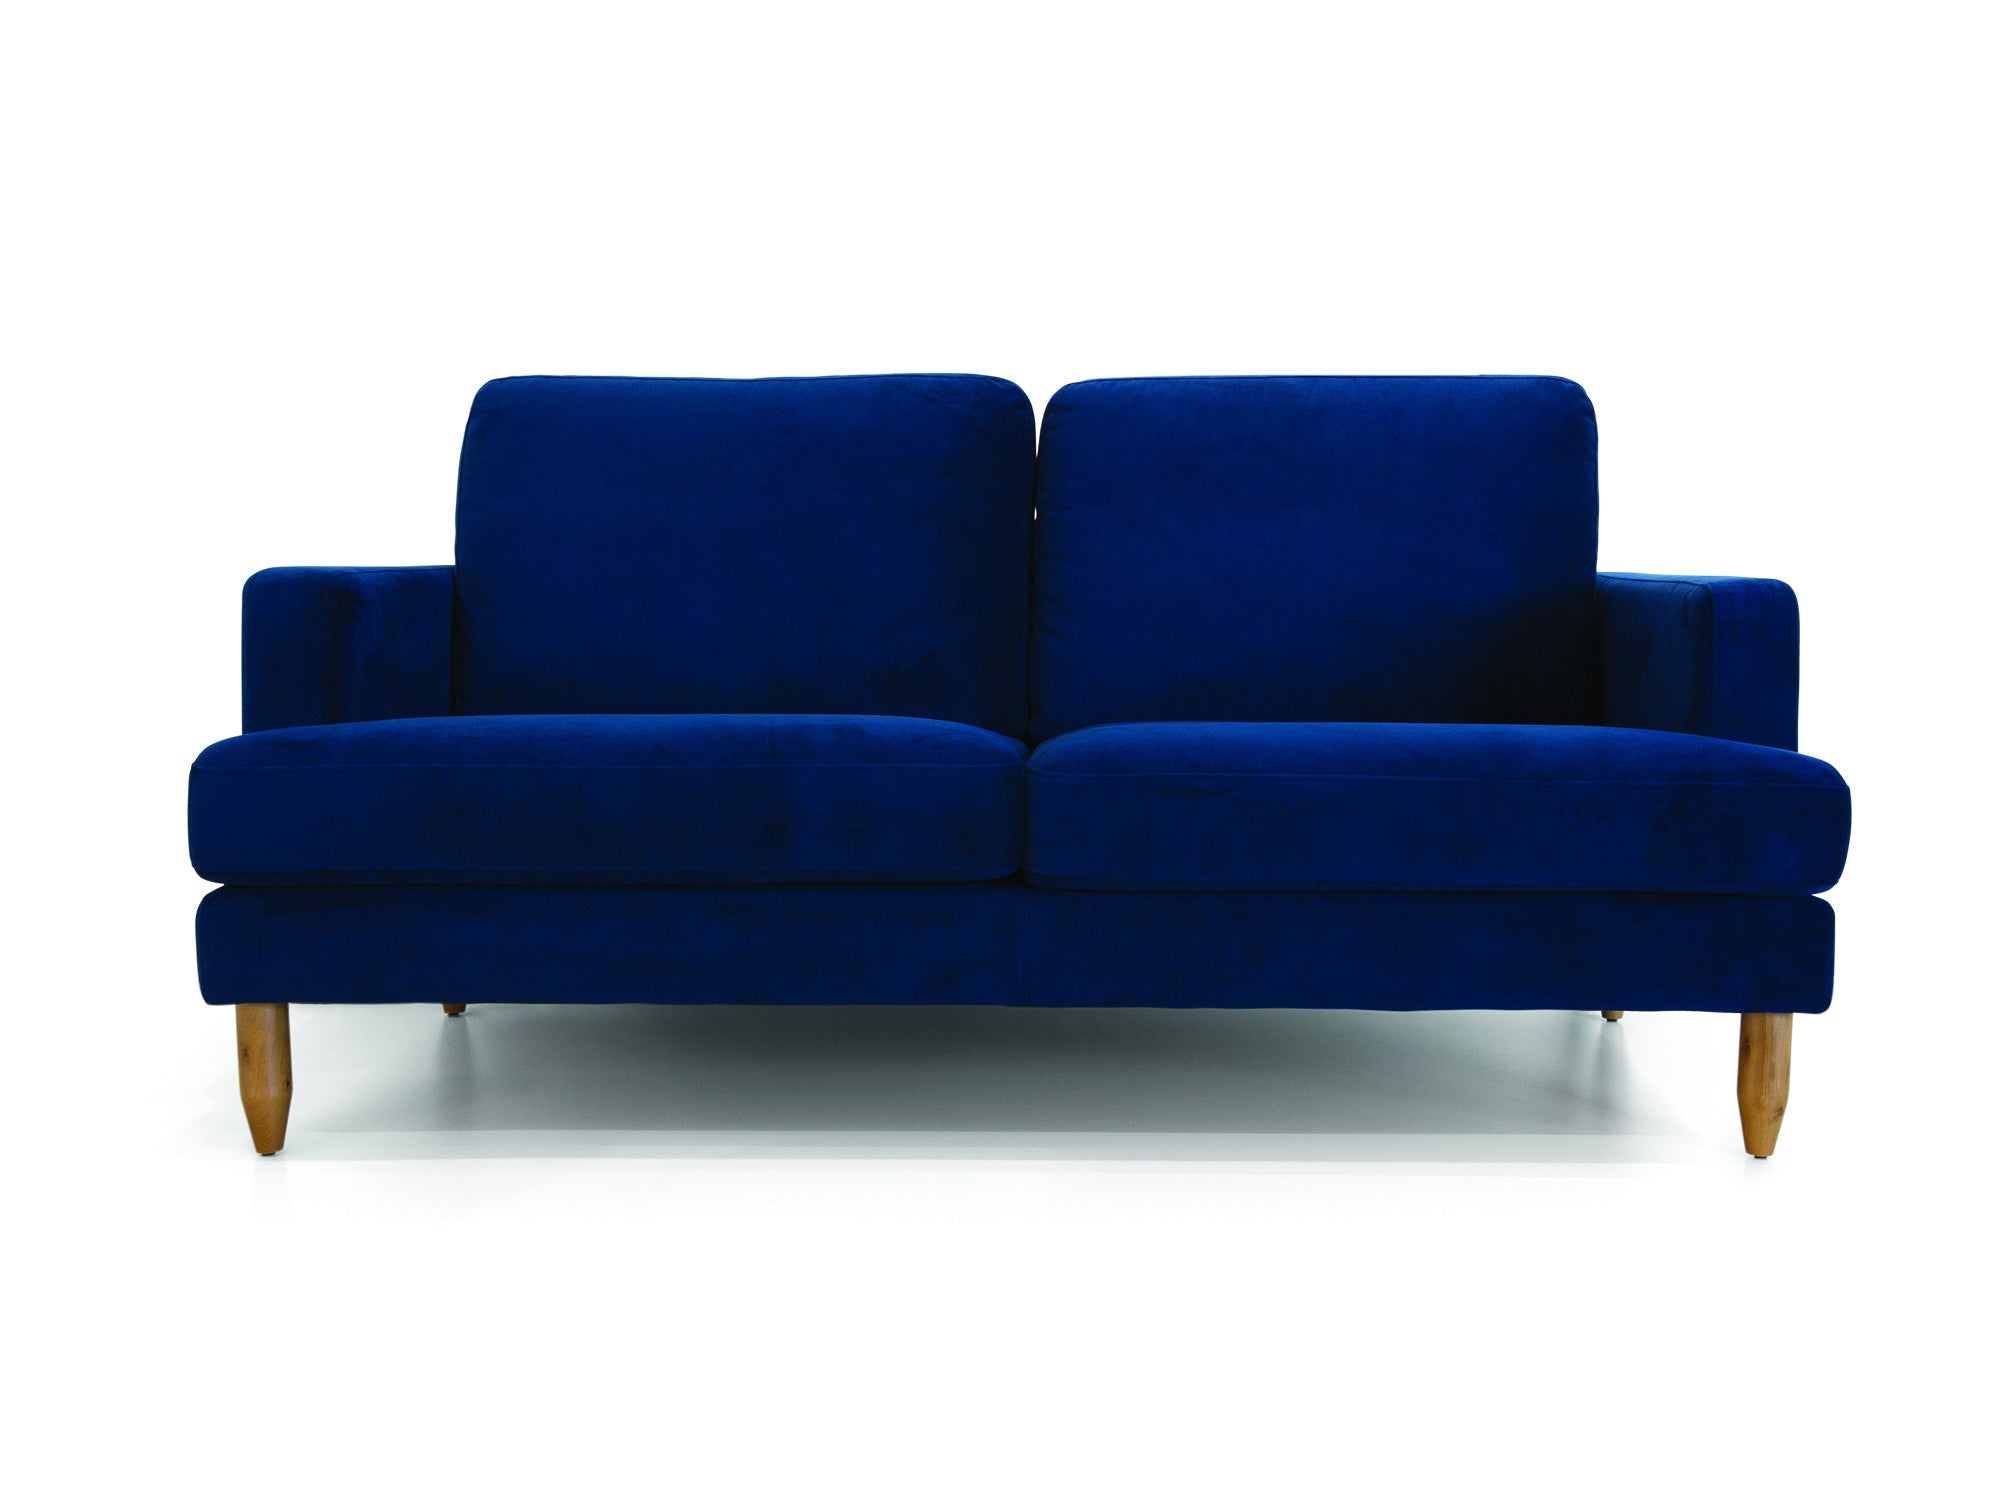 Costa sofa navy meubles newell furniture for Meubles newell montreal